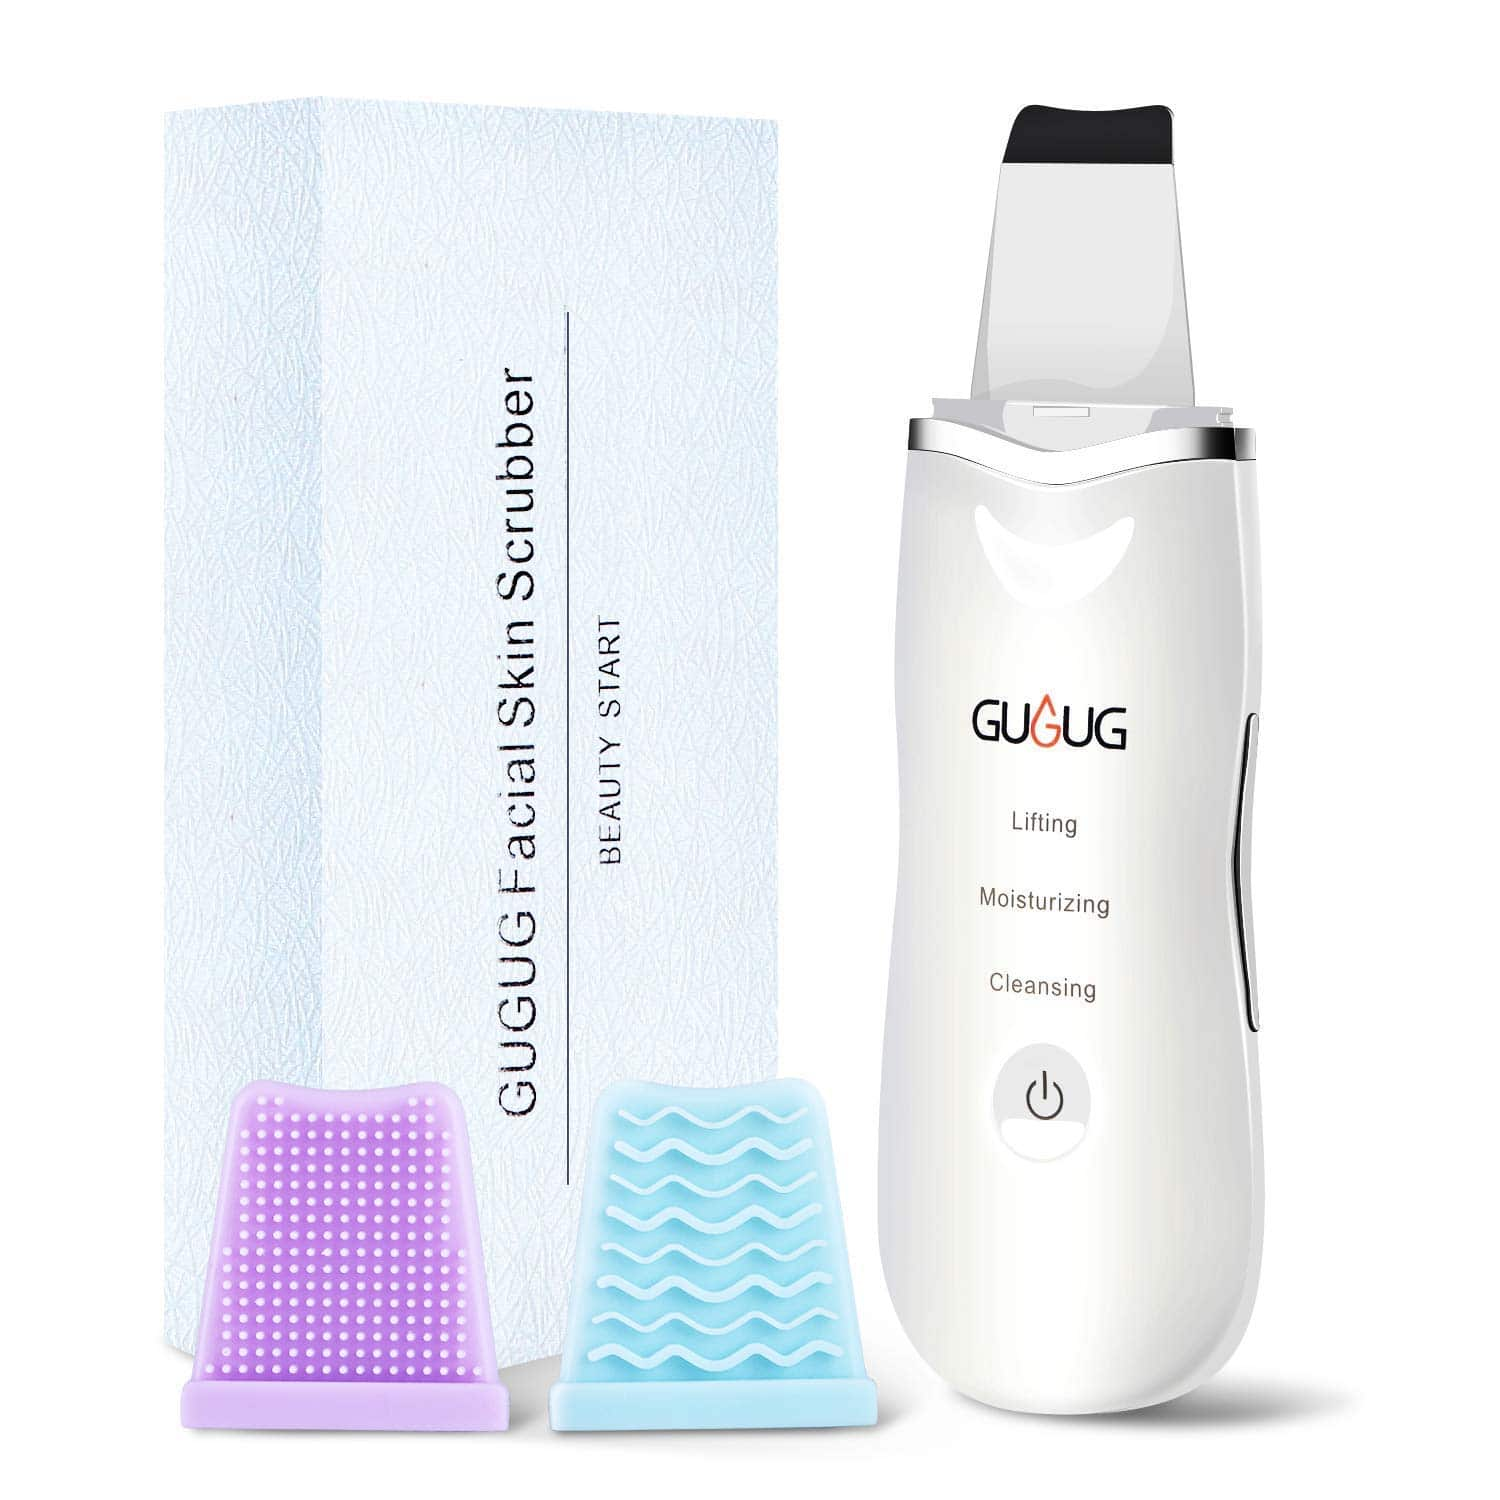 Blackhead Remover Comedone Extractor by GUGUG